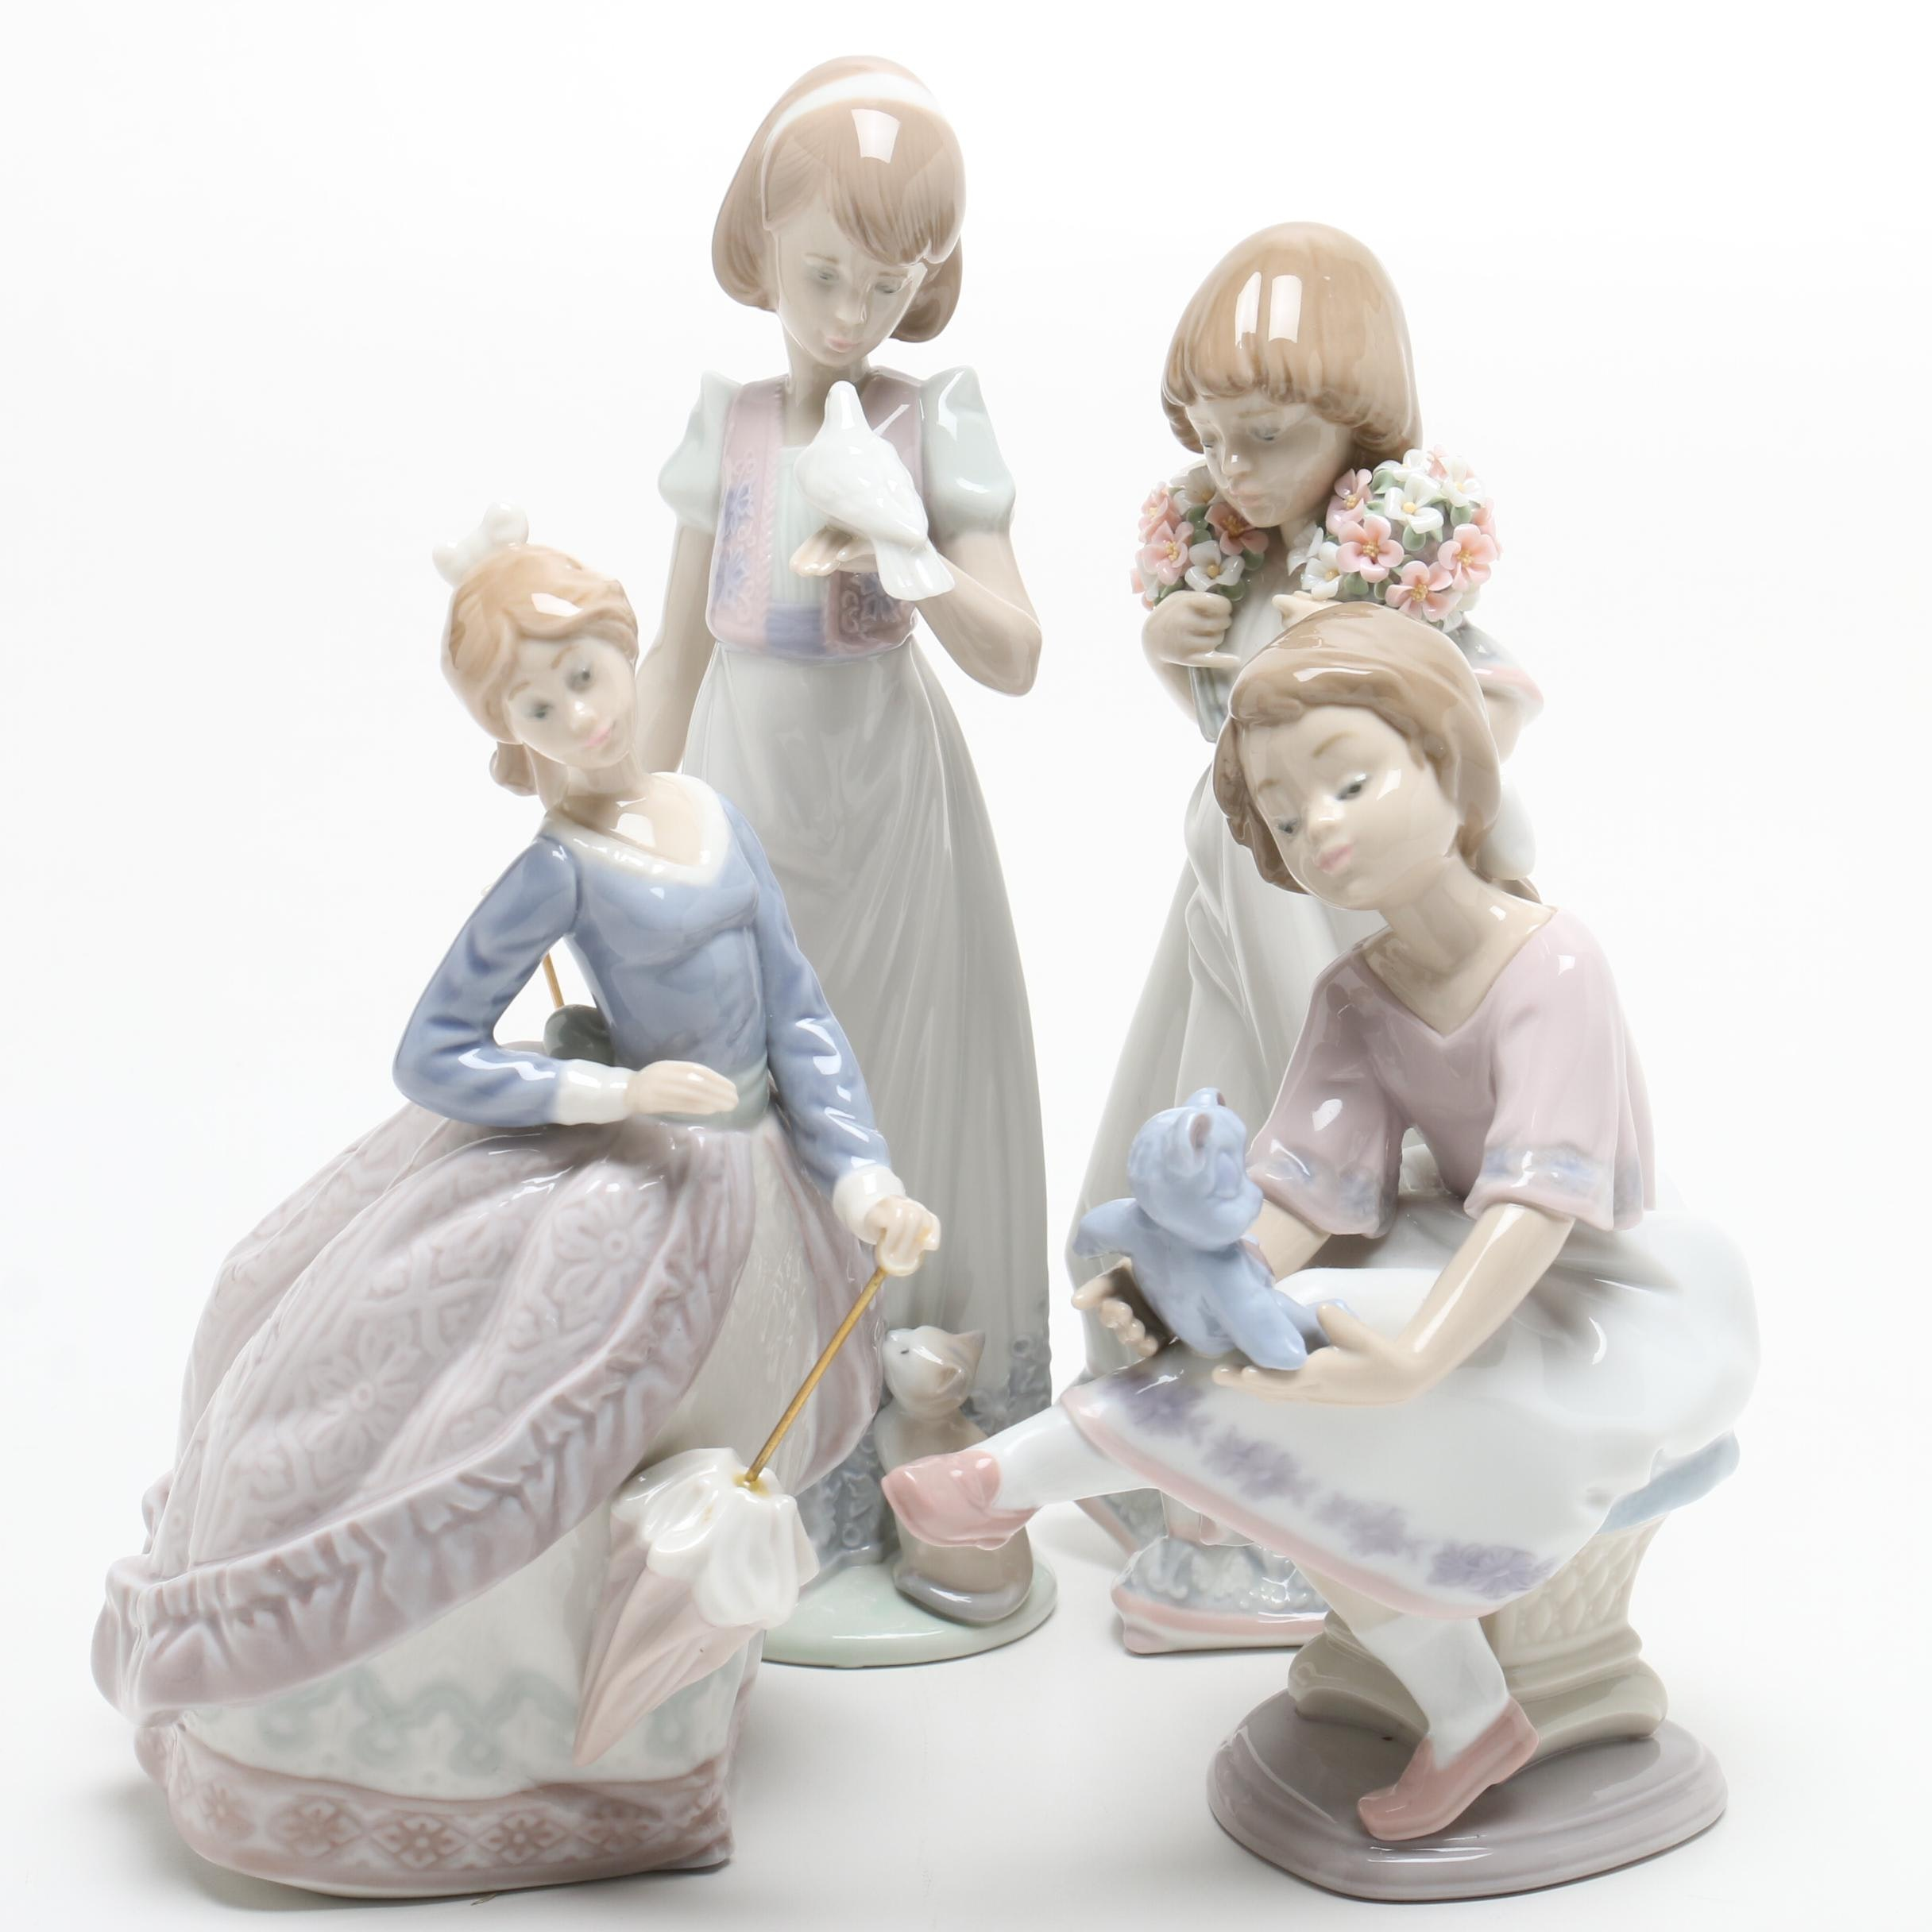 Lladró Young Girl Porcelain Figurines